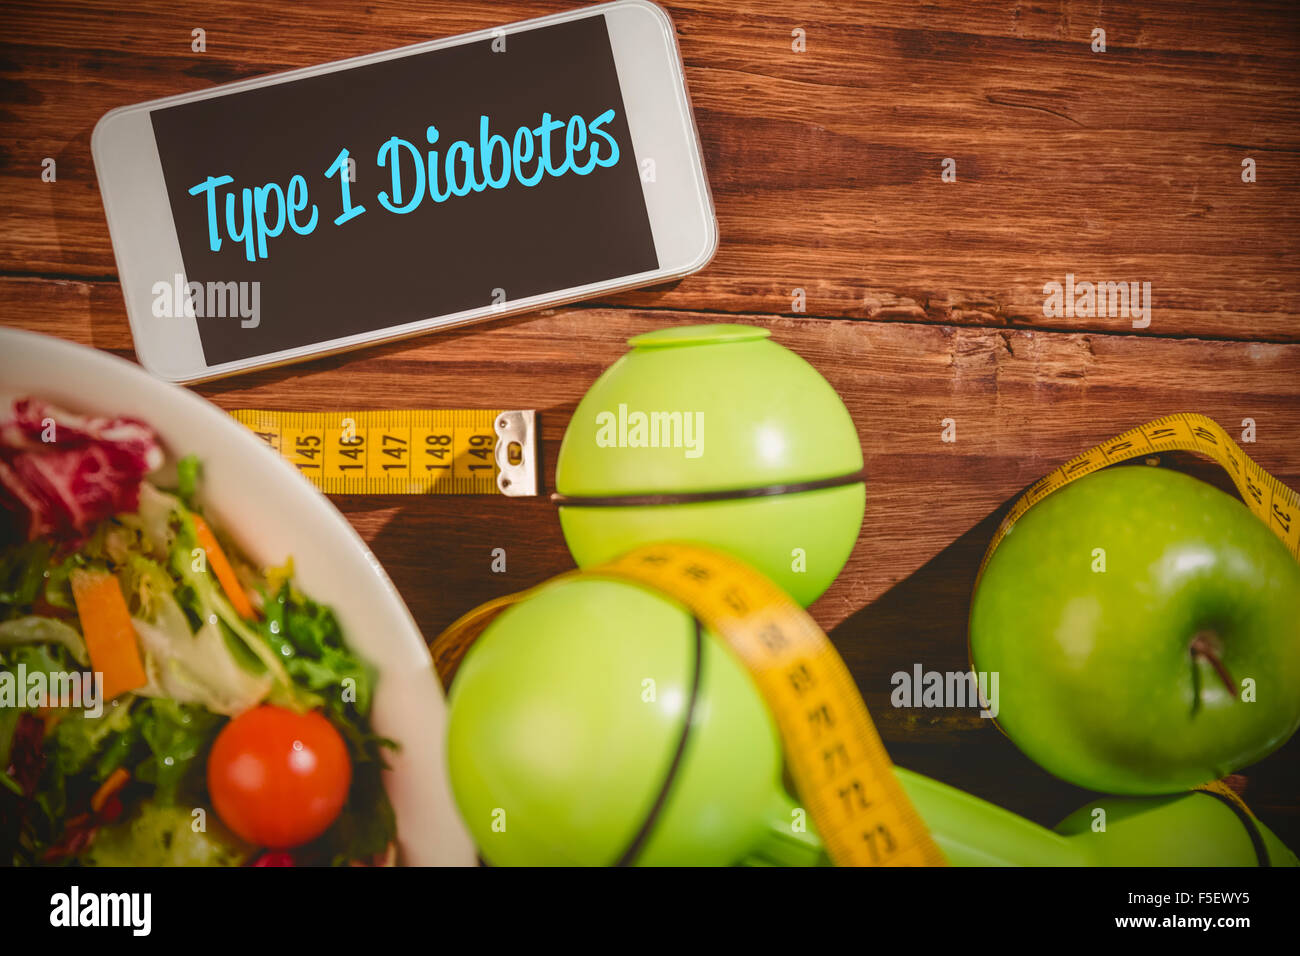 Type 1 diabetes against phone on healthy persons desk - Stock Image